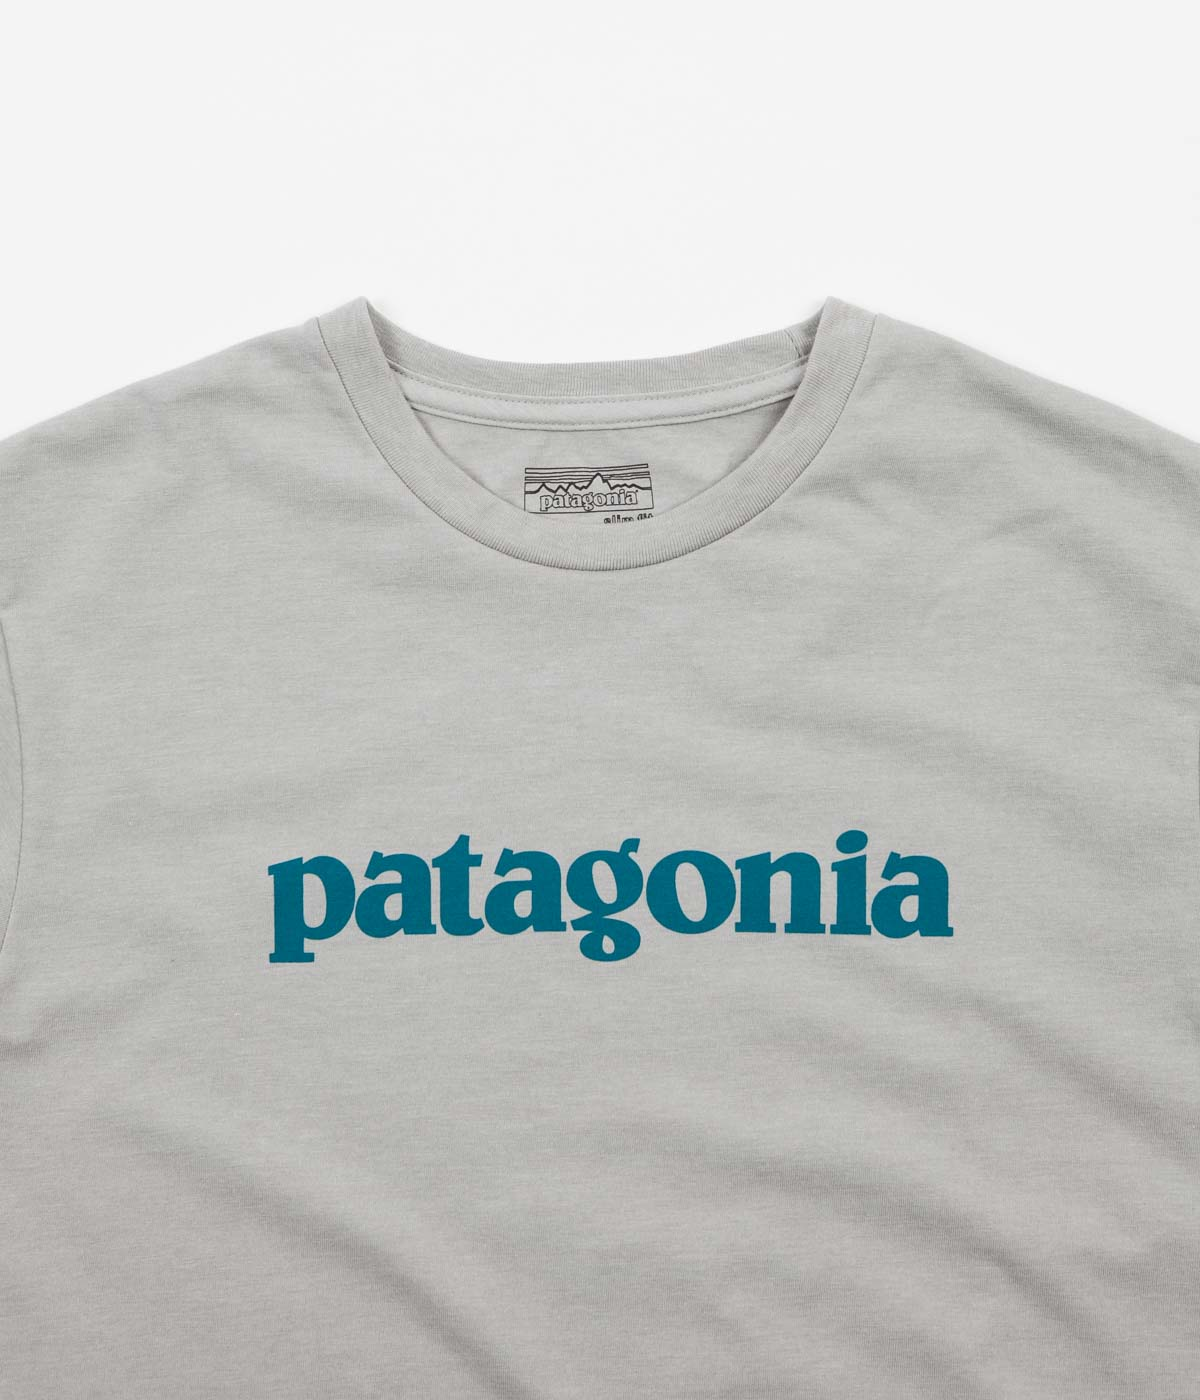 Patagonia Text Logo T-Shirt - Drifter Grey / Elwha Blue